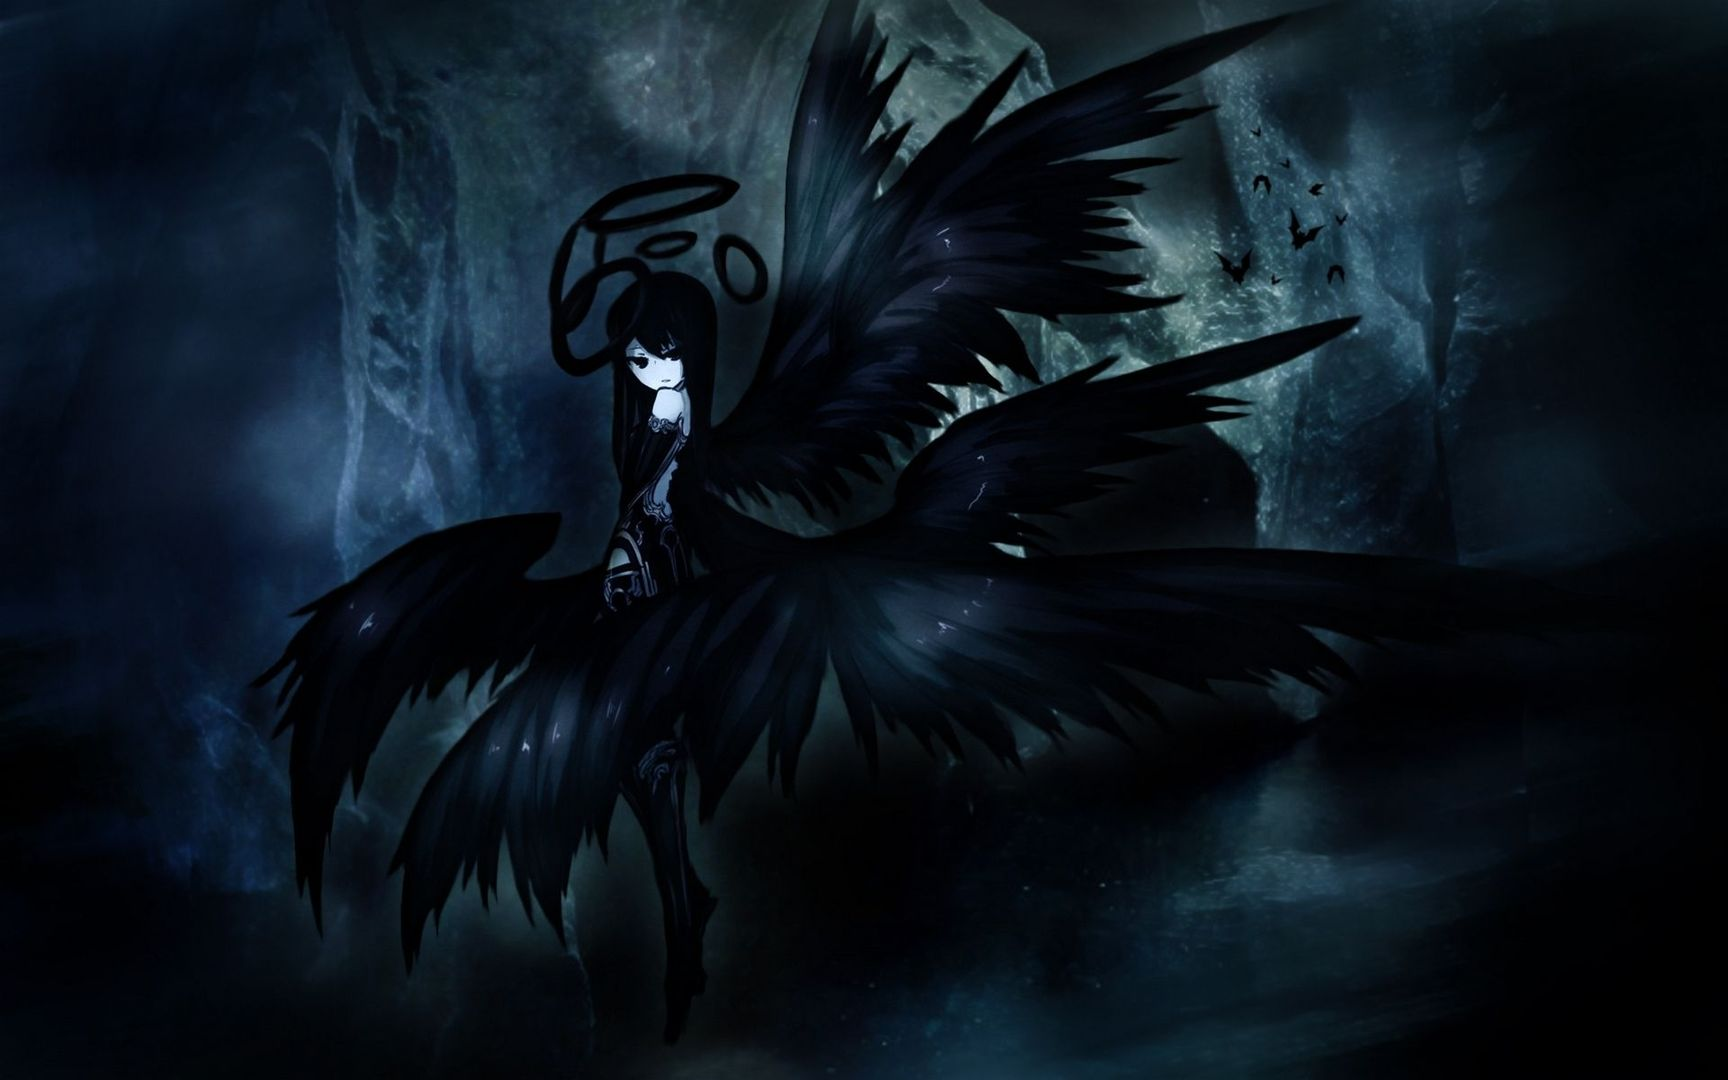 46 Black Angel Anime Wallpaper On Wallpapersafari